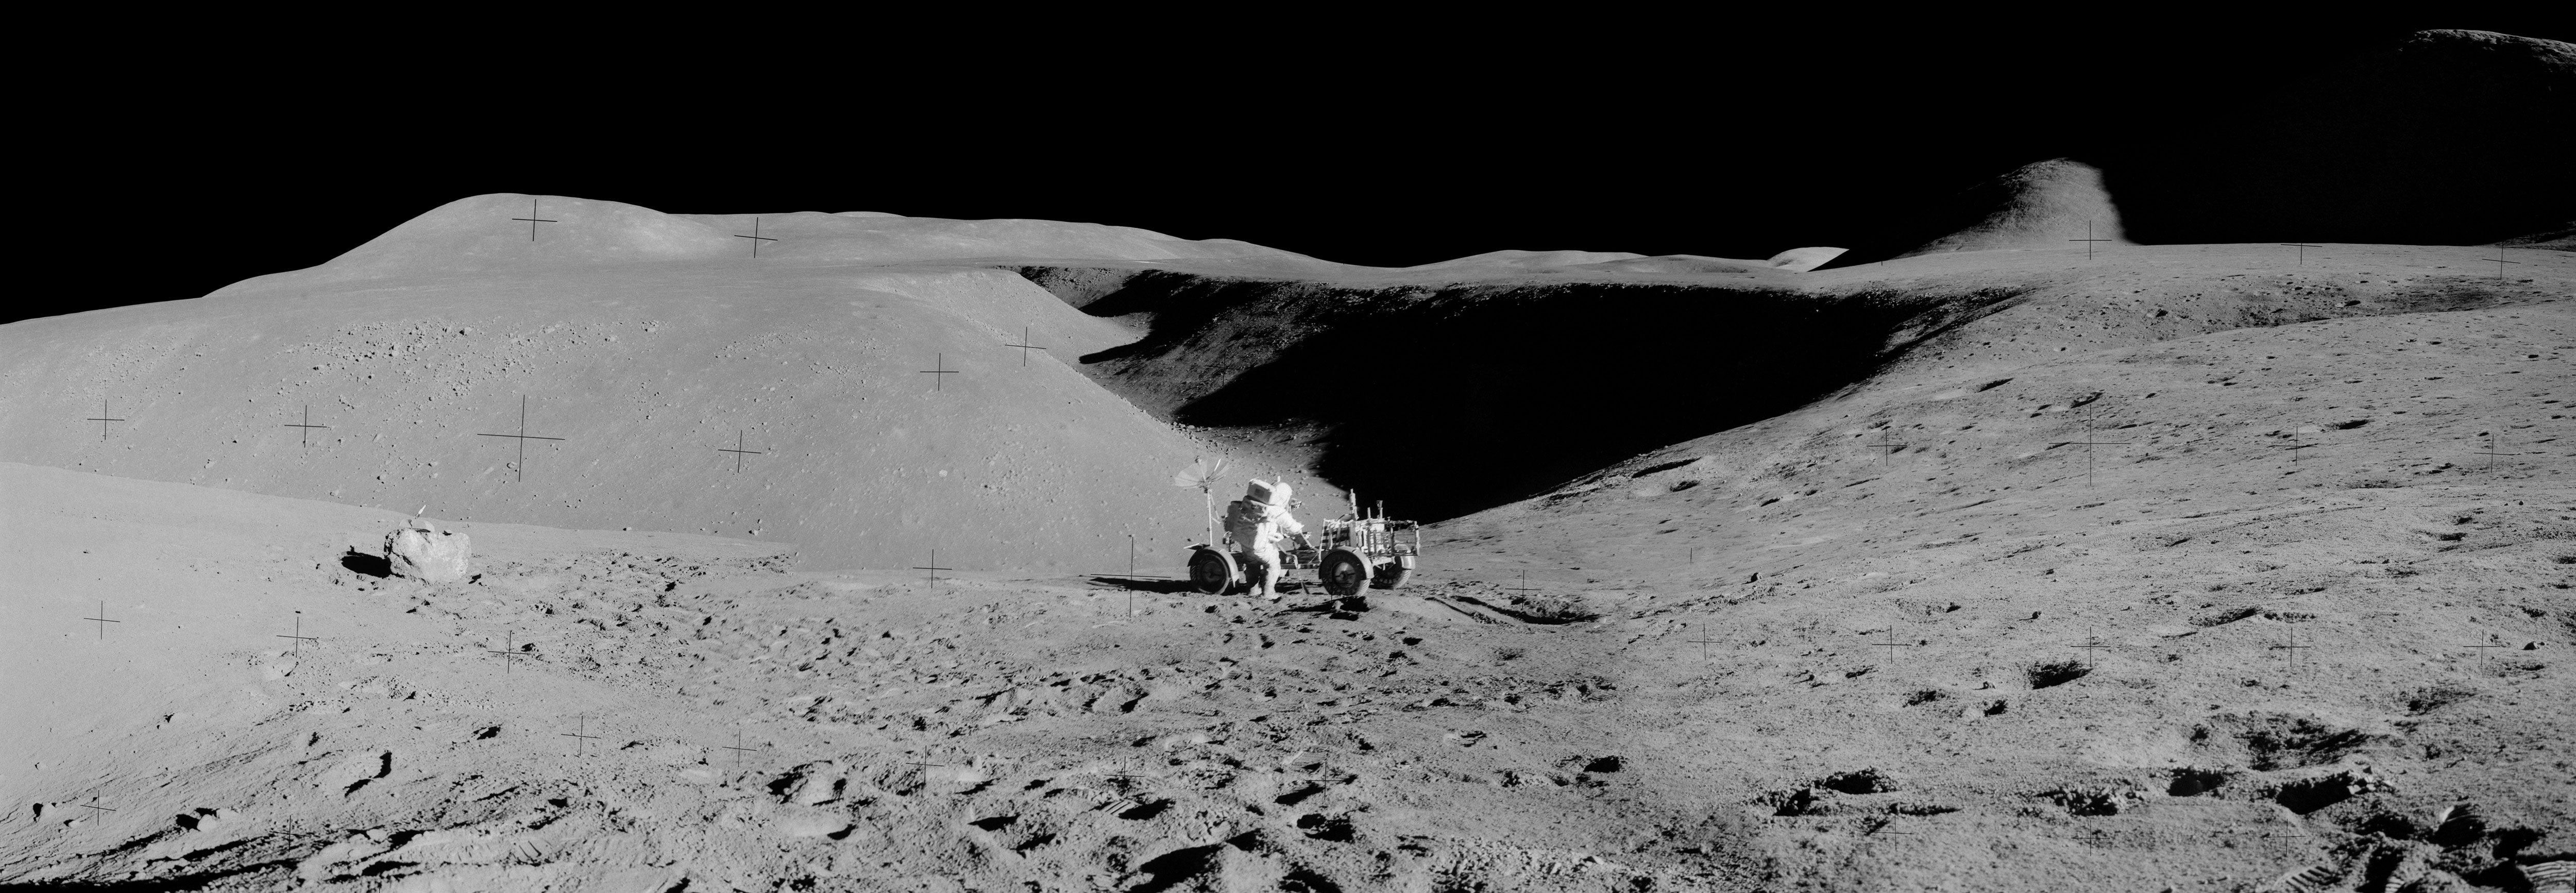 Apollo 15 astronaut Dave Scott and the Lunar Rover with a view up Hadley Rille in the background. Credit: NASA via Retro Space Images